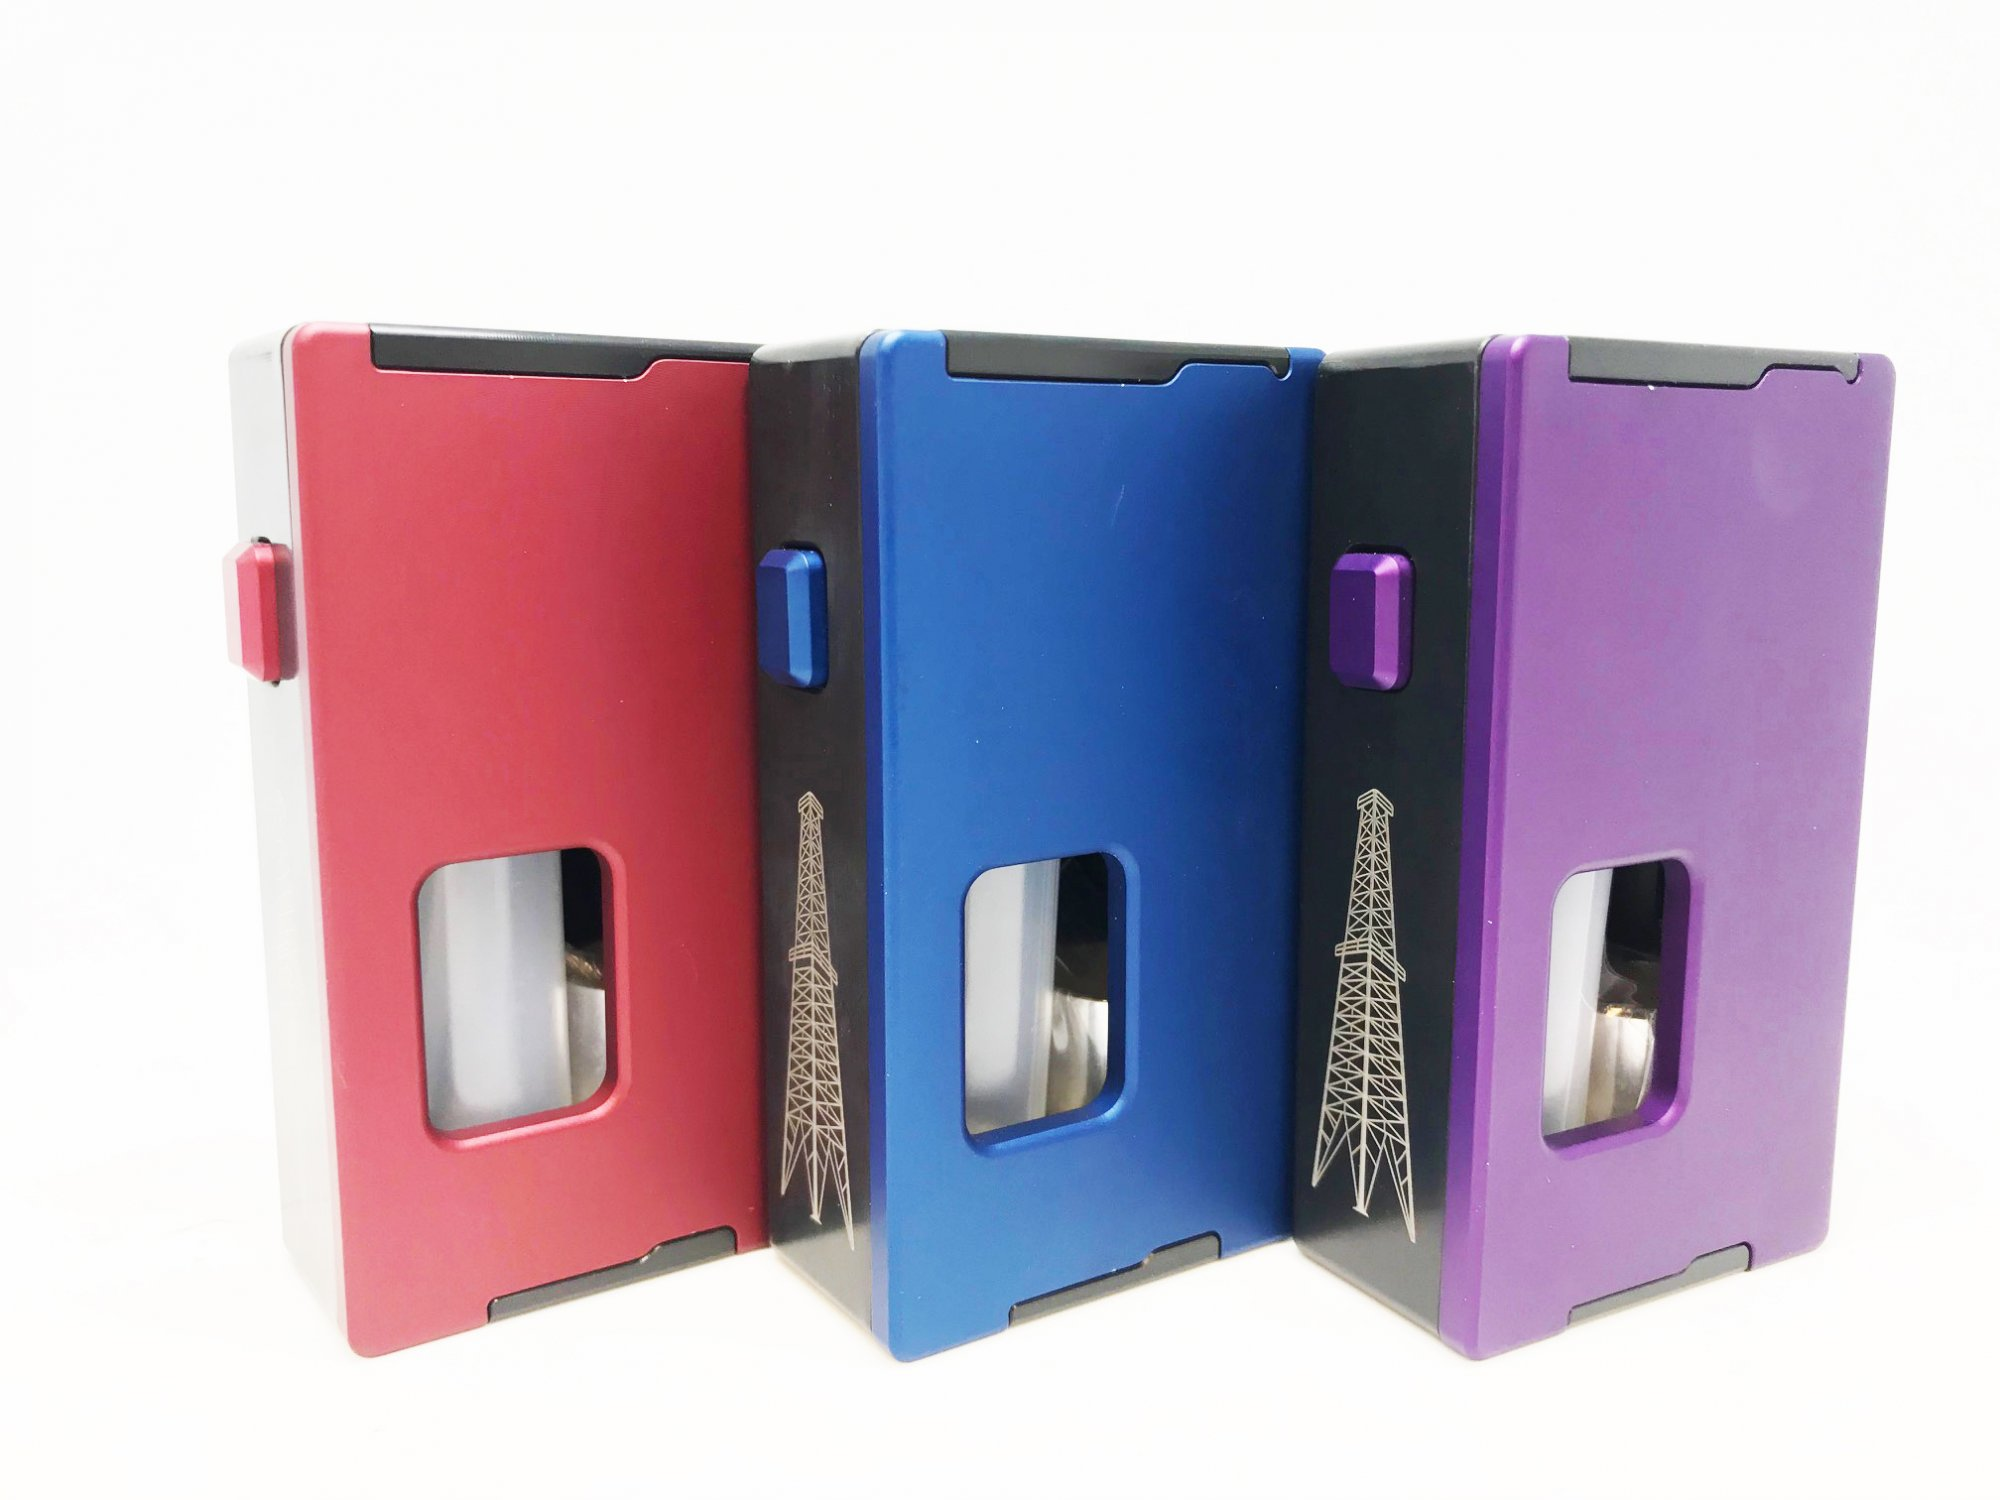 VapeAMP Squonk Box